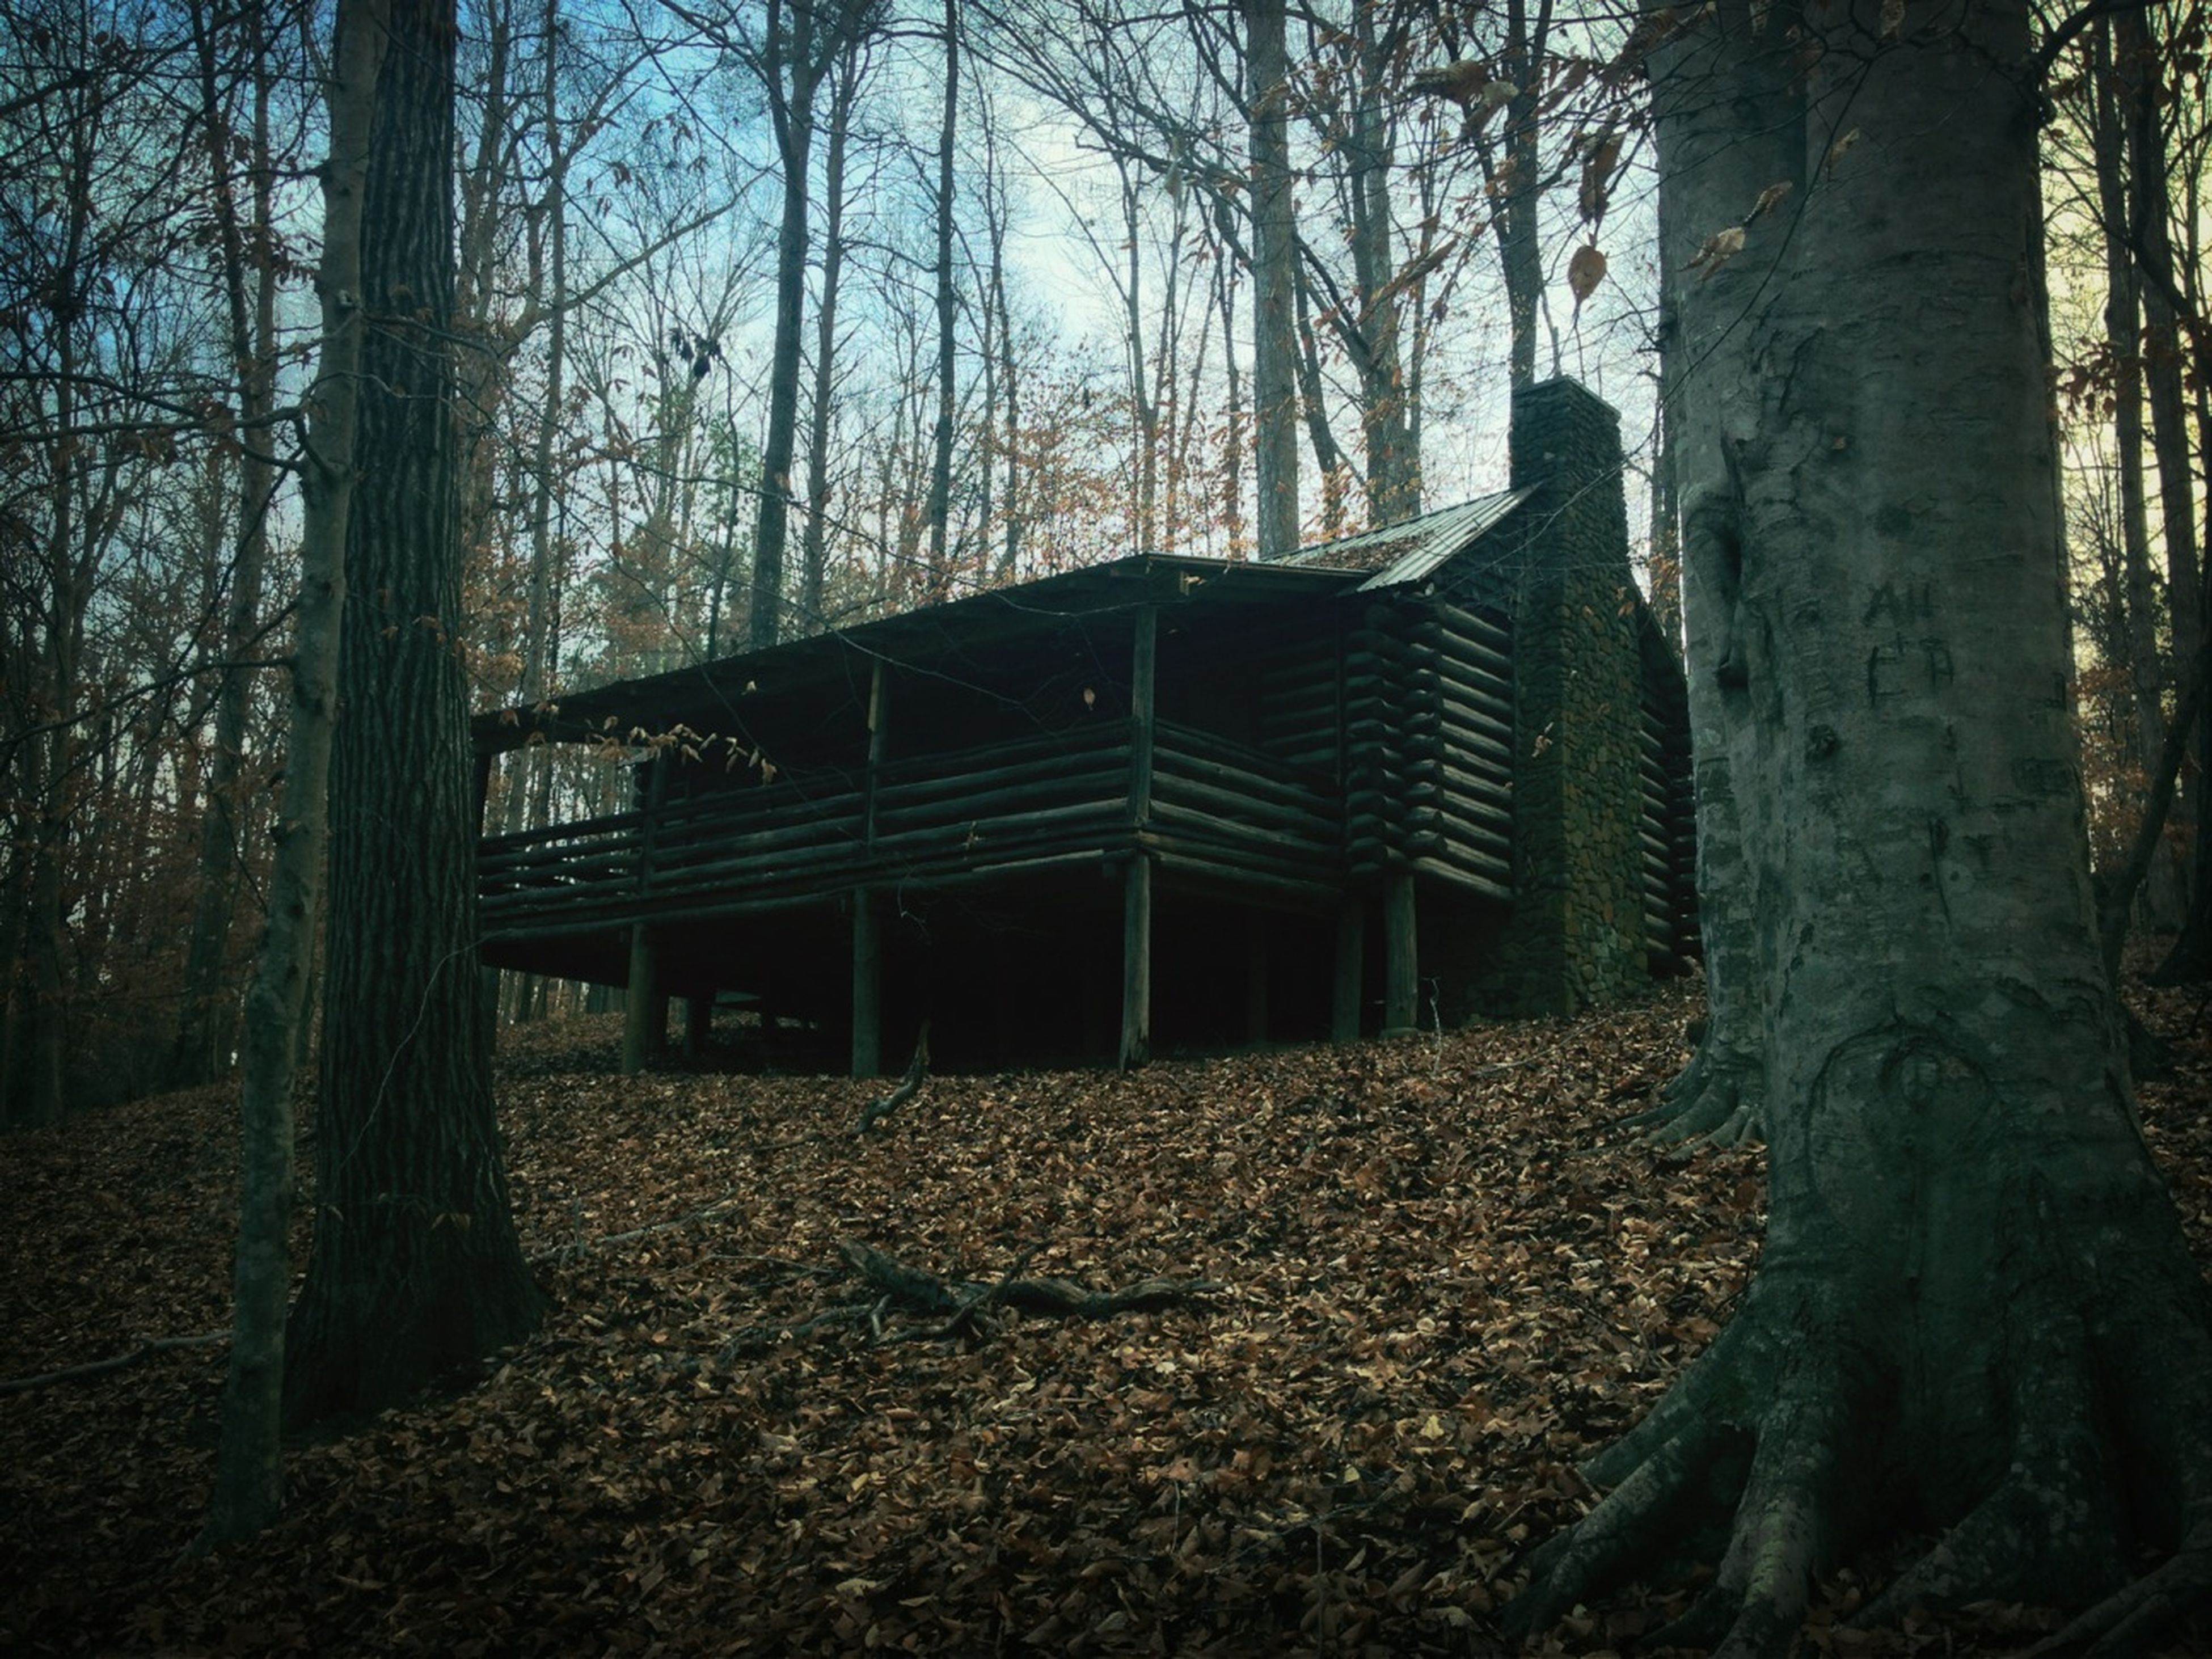 architecture, built structure, tree, building exterior, house, abandoned, bare tree, old, damaged, tree trunk, obsolete, branch, forest, sky, day, run-down, outdoors, deterioration, field, nature